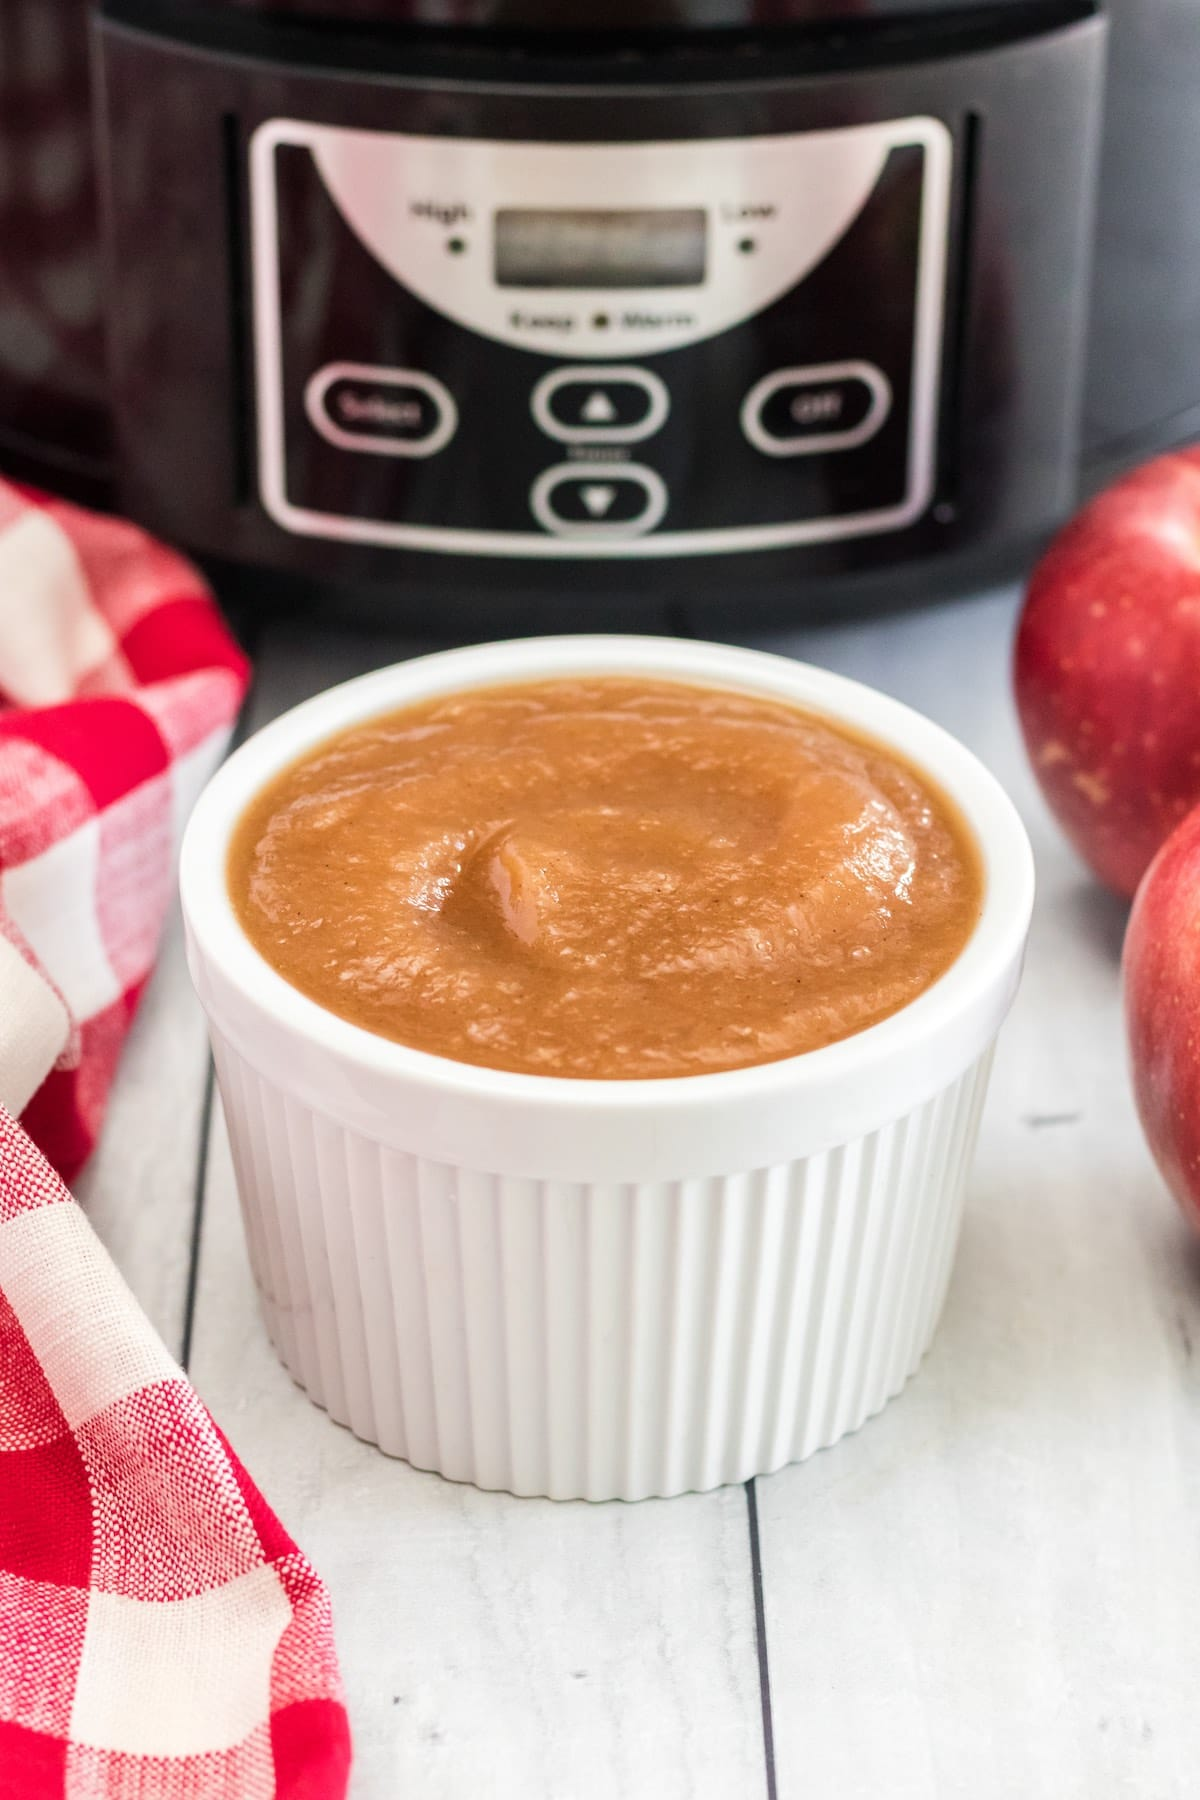 apple sauce in front of crockpot